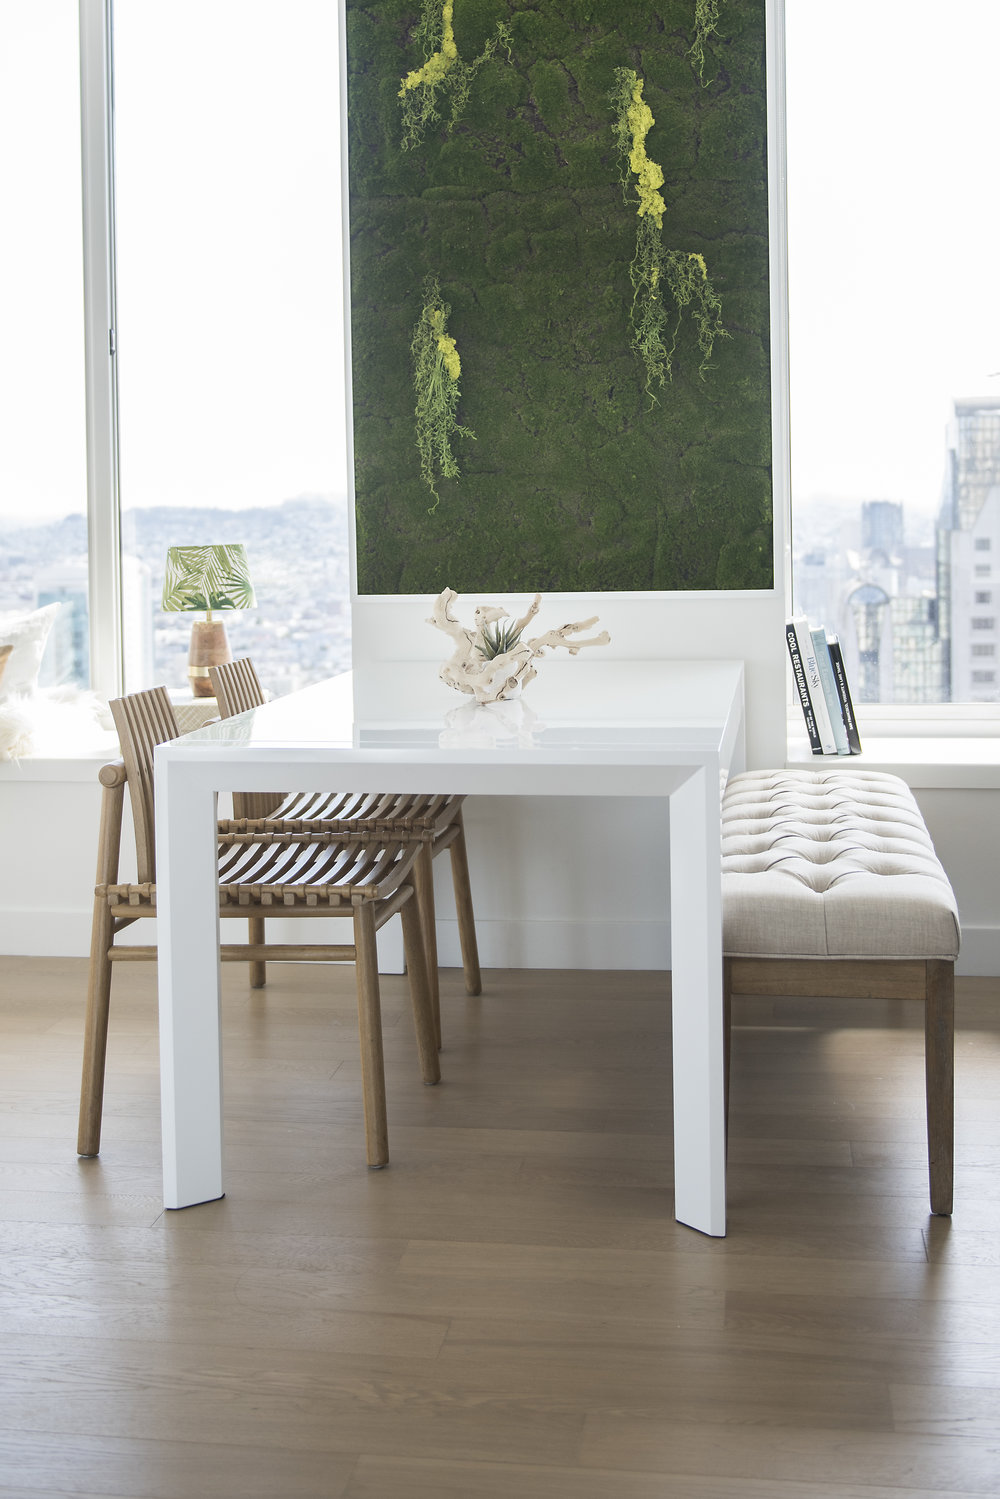 JuliaSperling_Houzz_San Francisco_Apartment_01.jpg